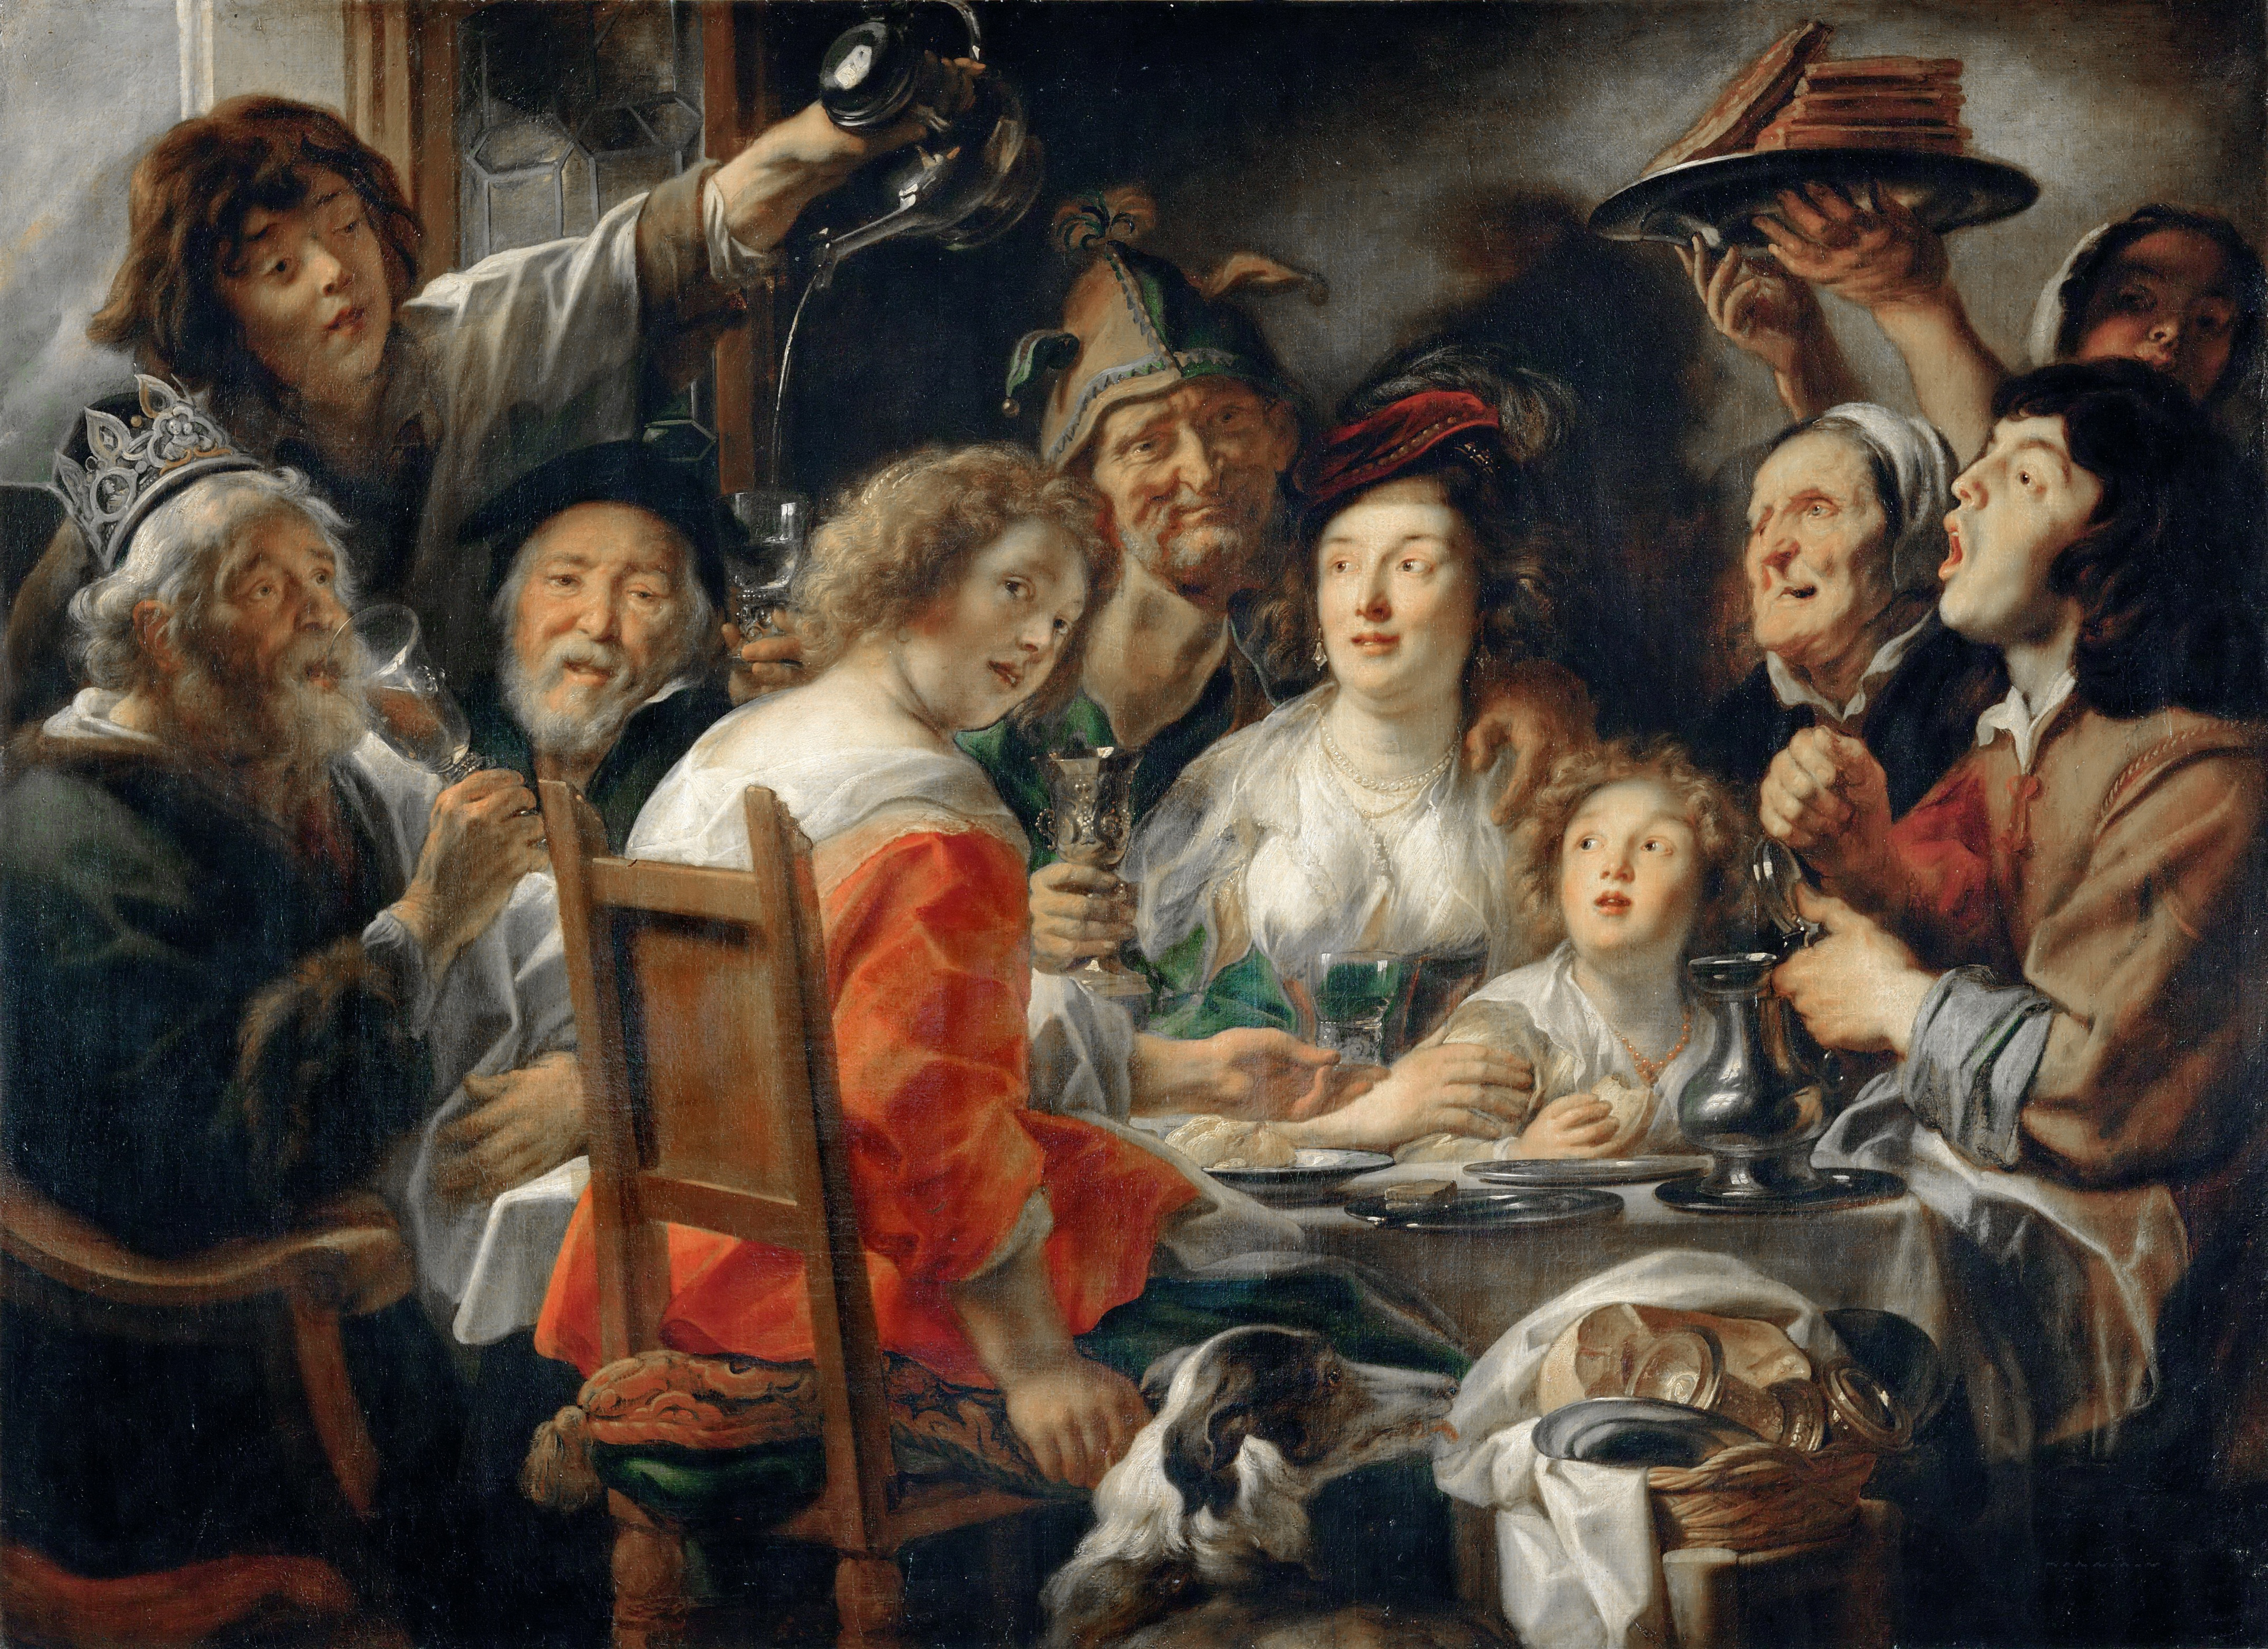 The King Drinks, or Family Meal on the Feast of Epiphany. Artist: Jordaens, Jacob (1593-1678)